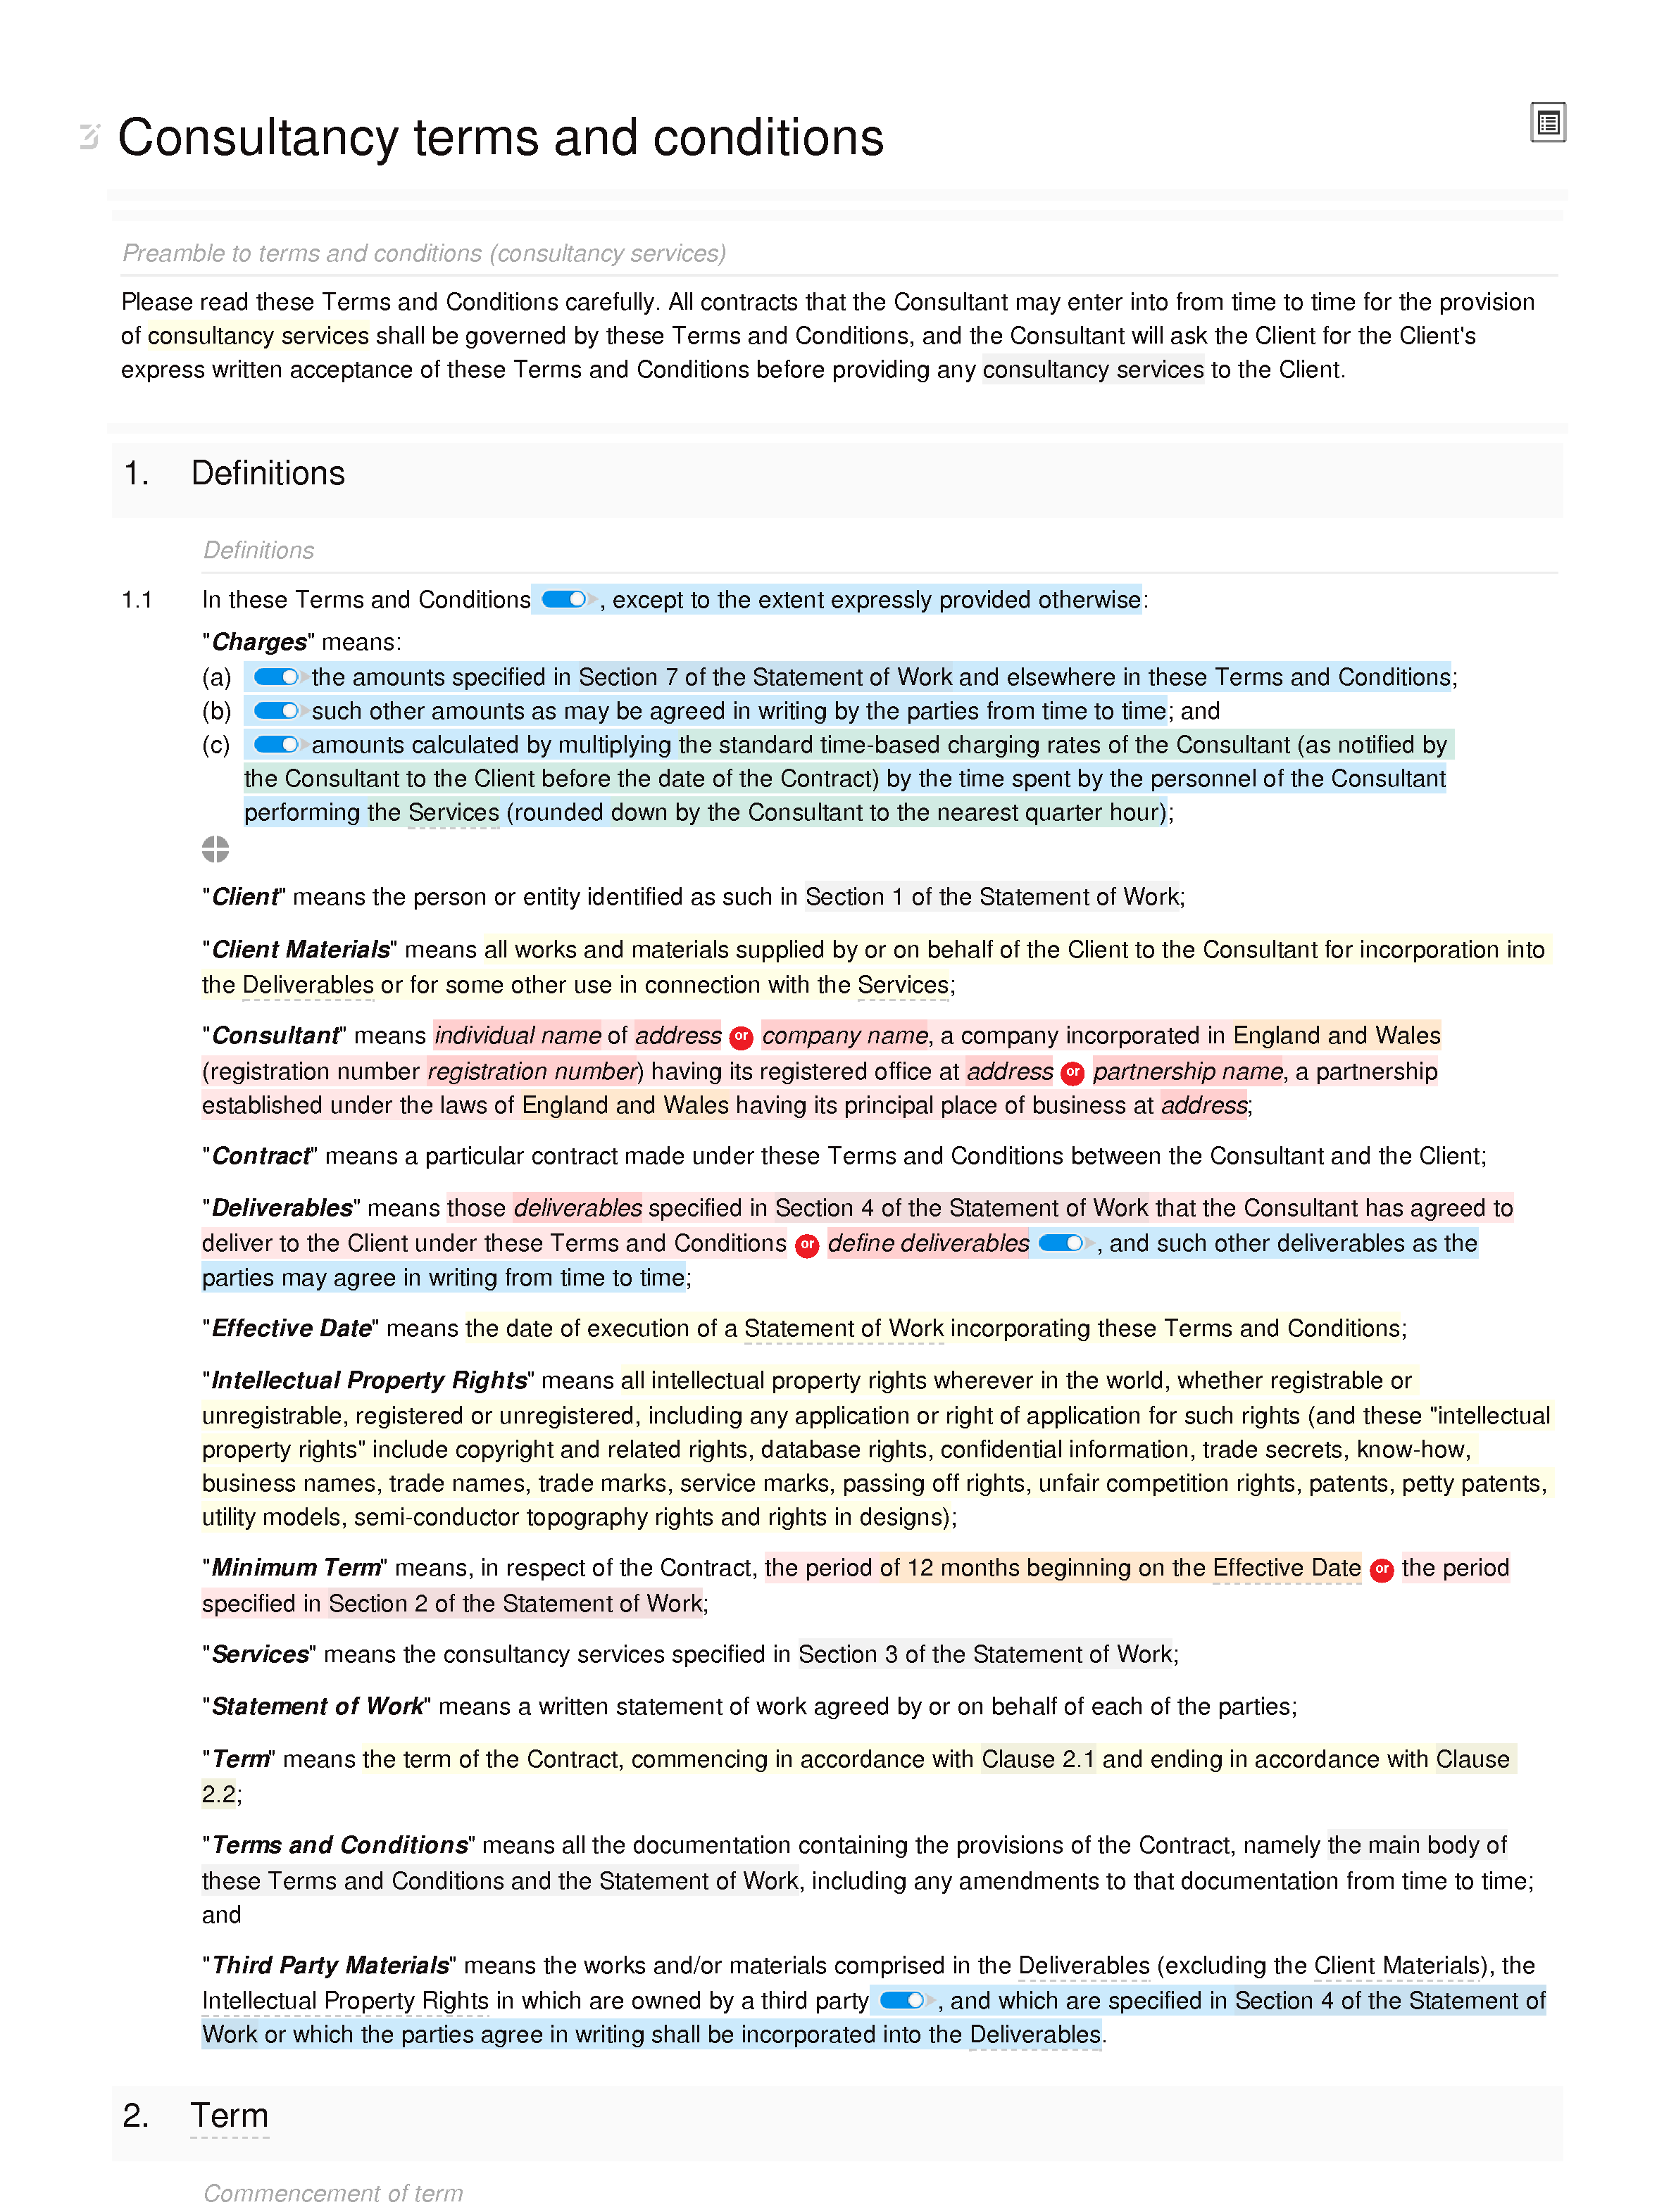 Consultancy terms and conditions (basic) document editor preview